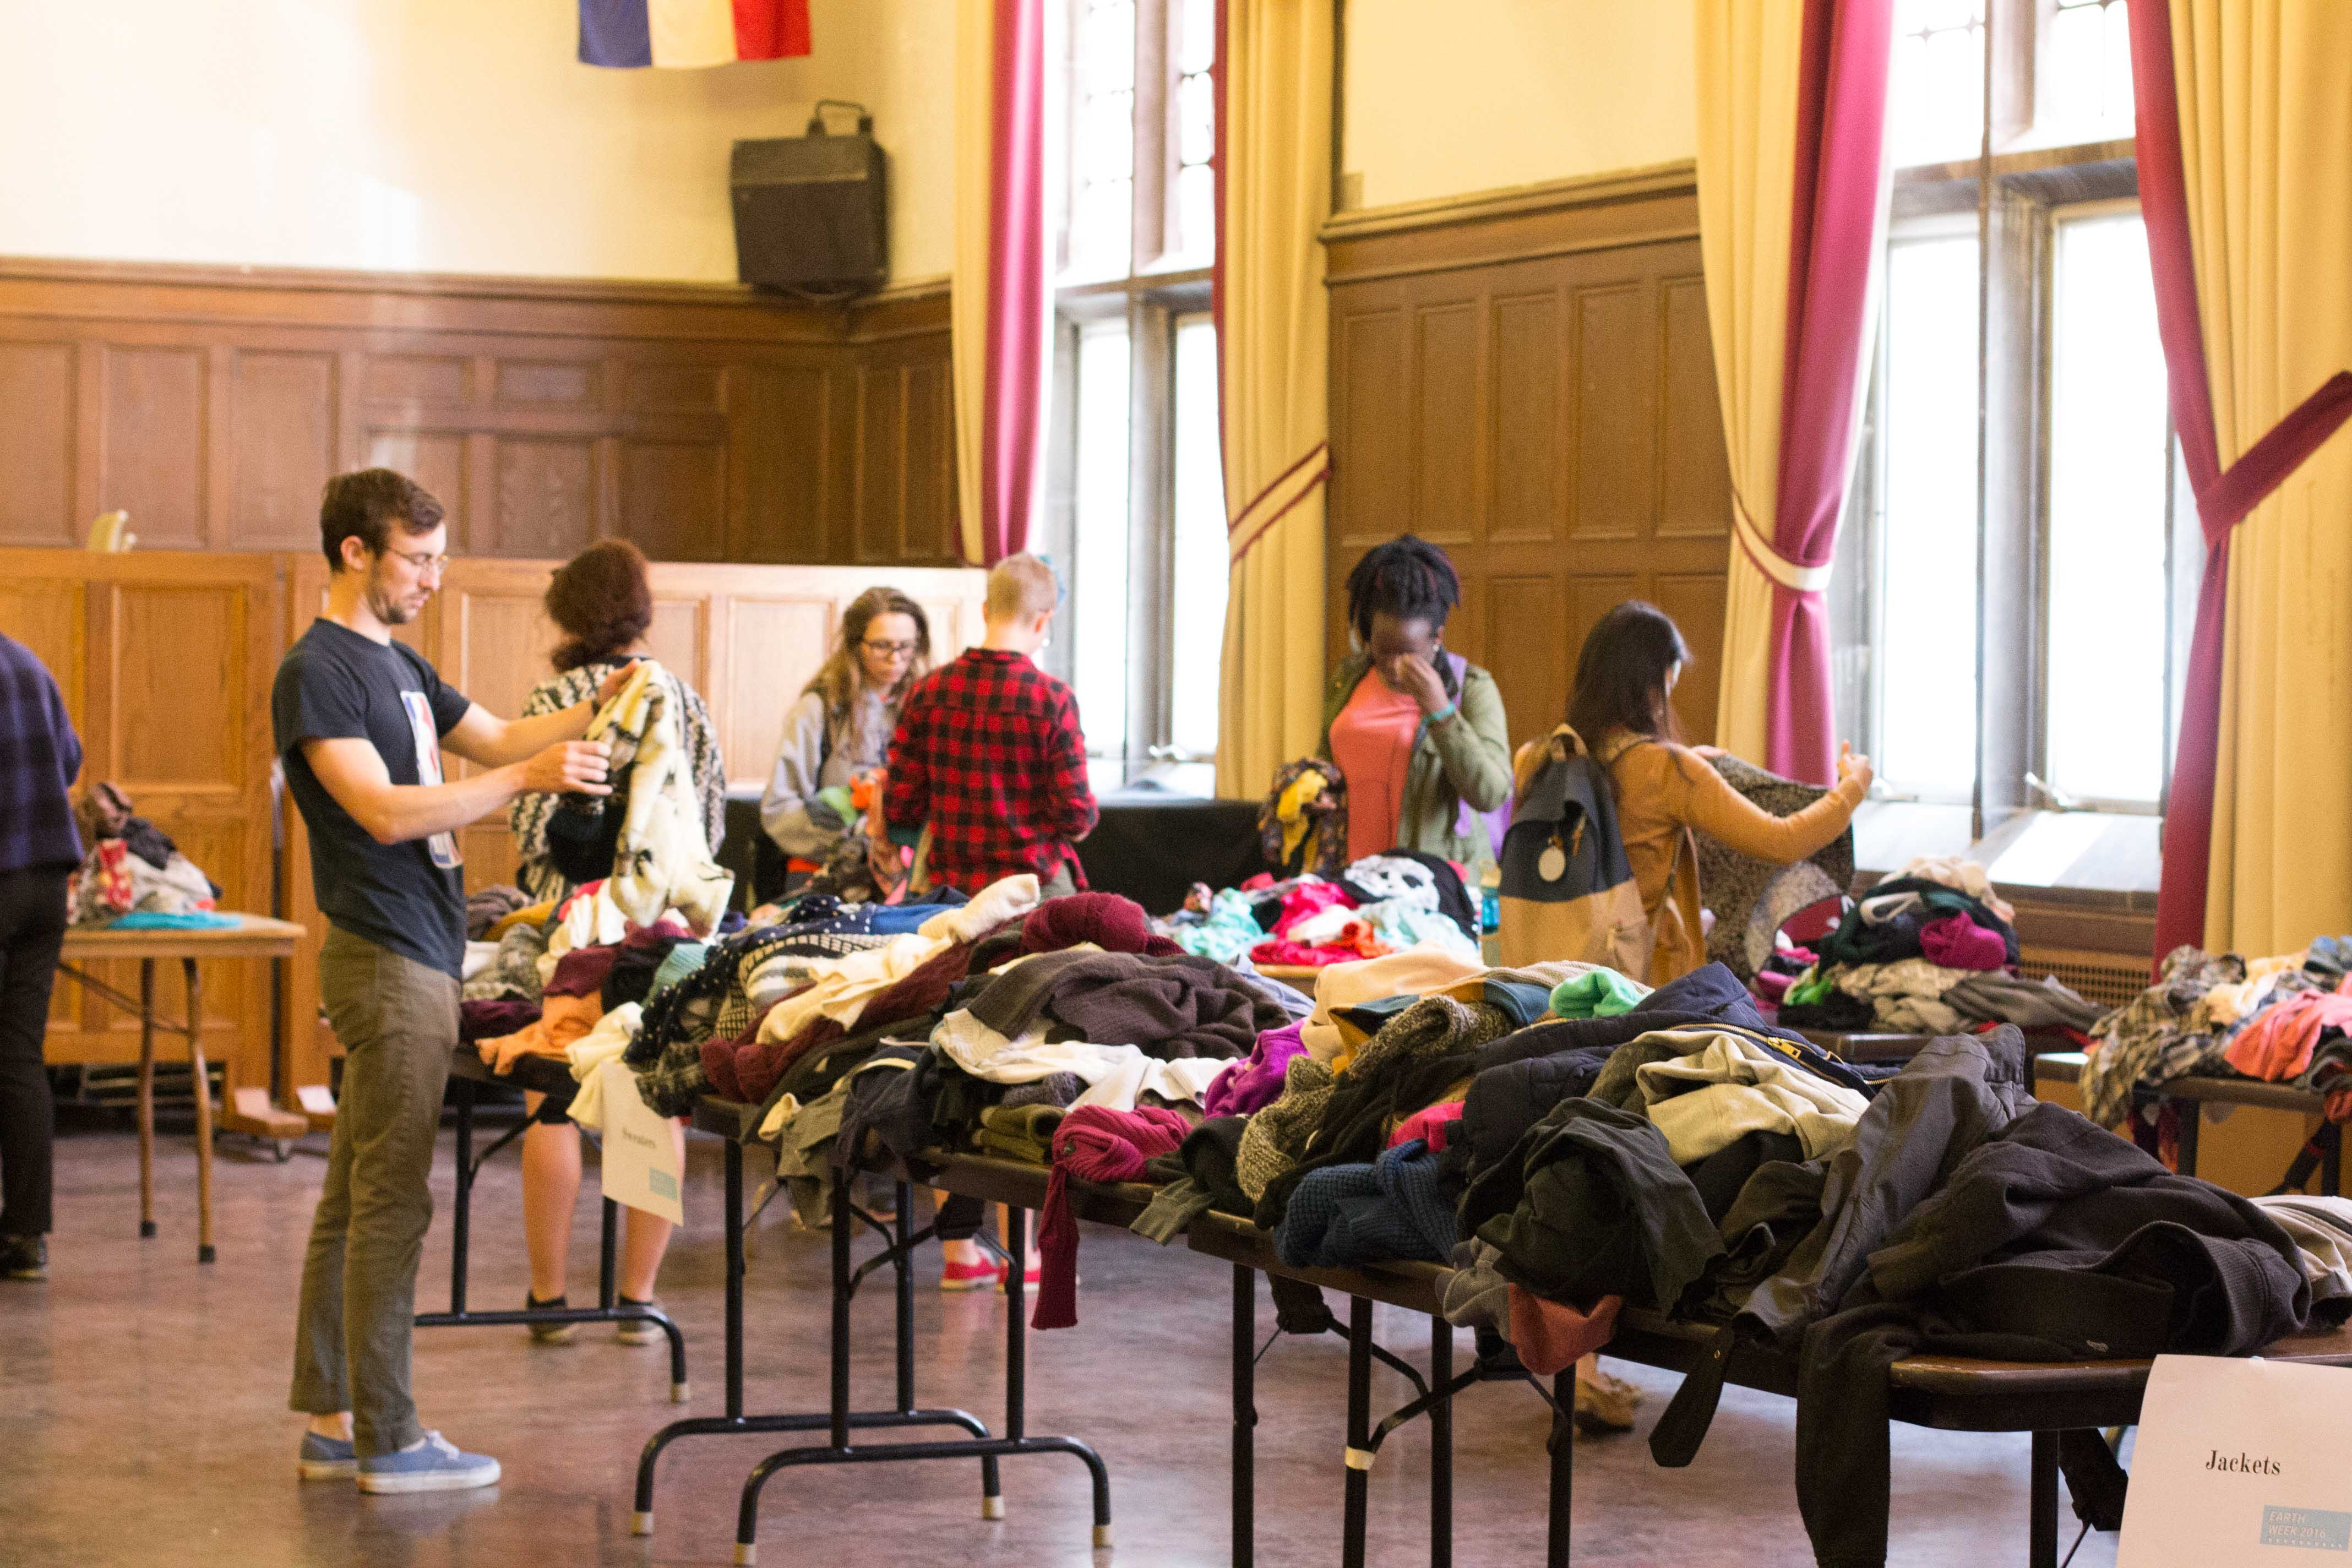 Community members attend the SEC Spring 2016 Clothing Swap as an alternative to buying new clothes while simultaneously mitigating anthropogenic waste.